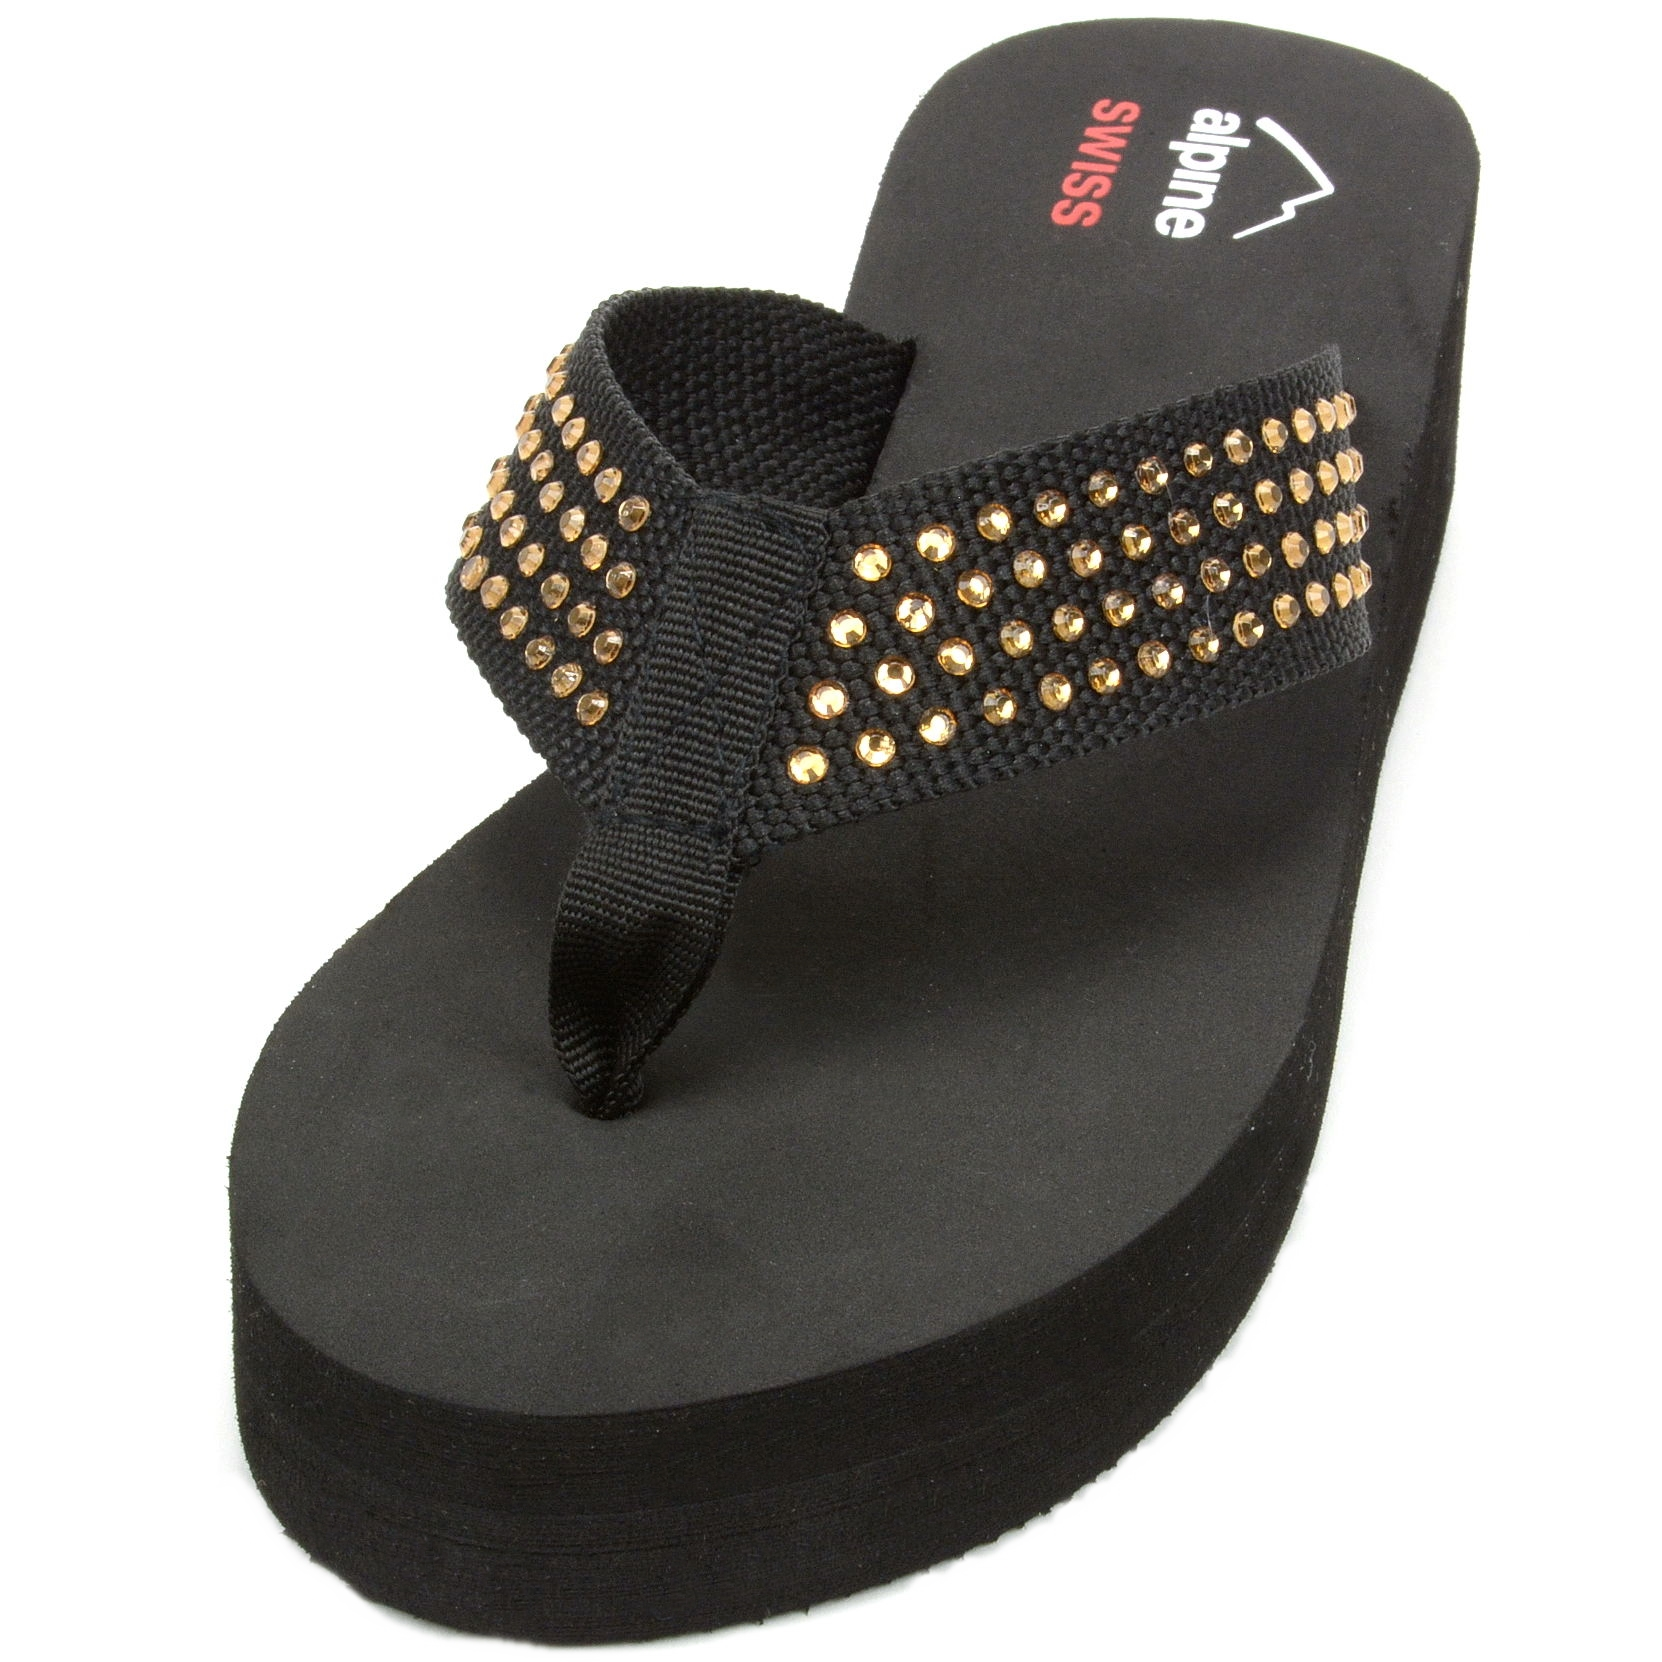 Alpine Swiss Womens Flip Flops Thong Sandals Rhinestone -7041